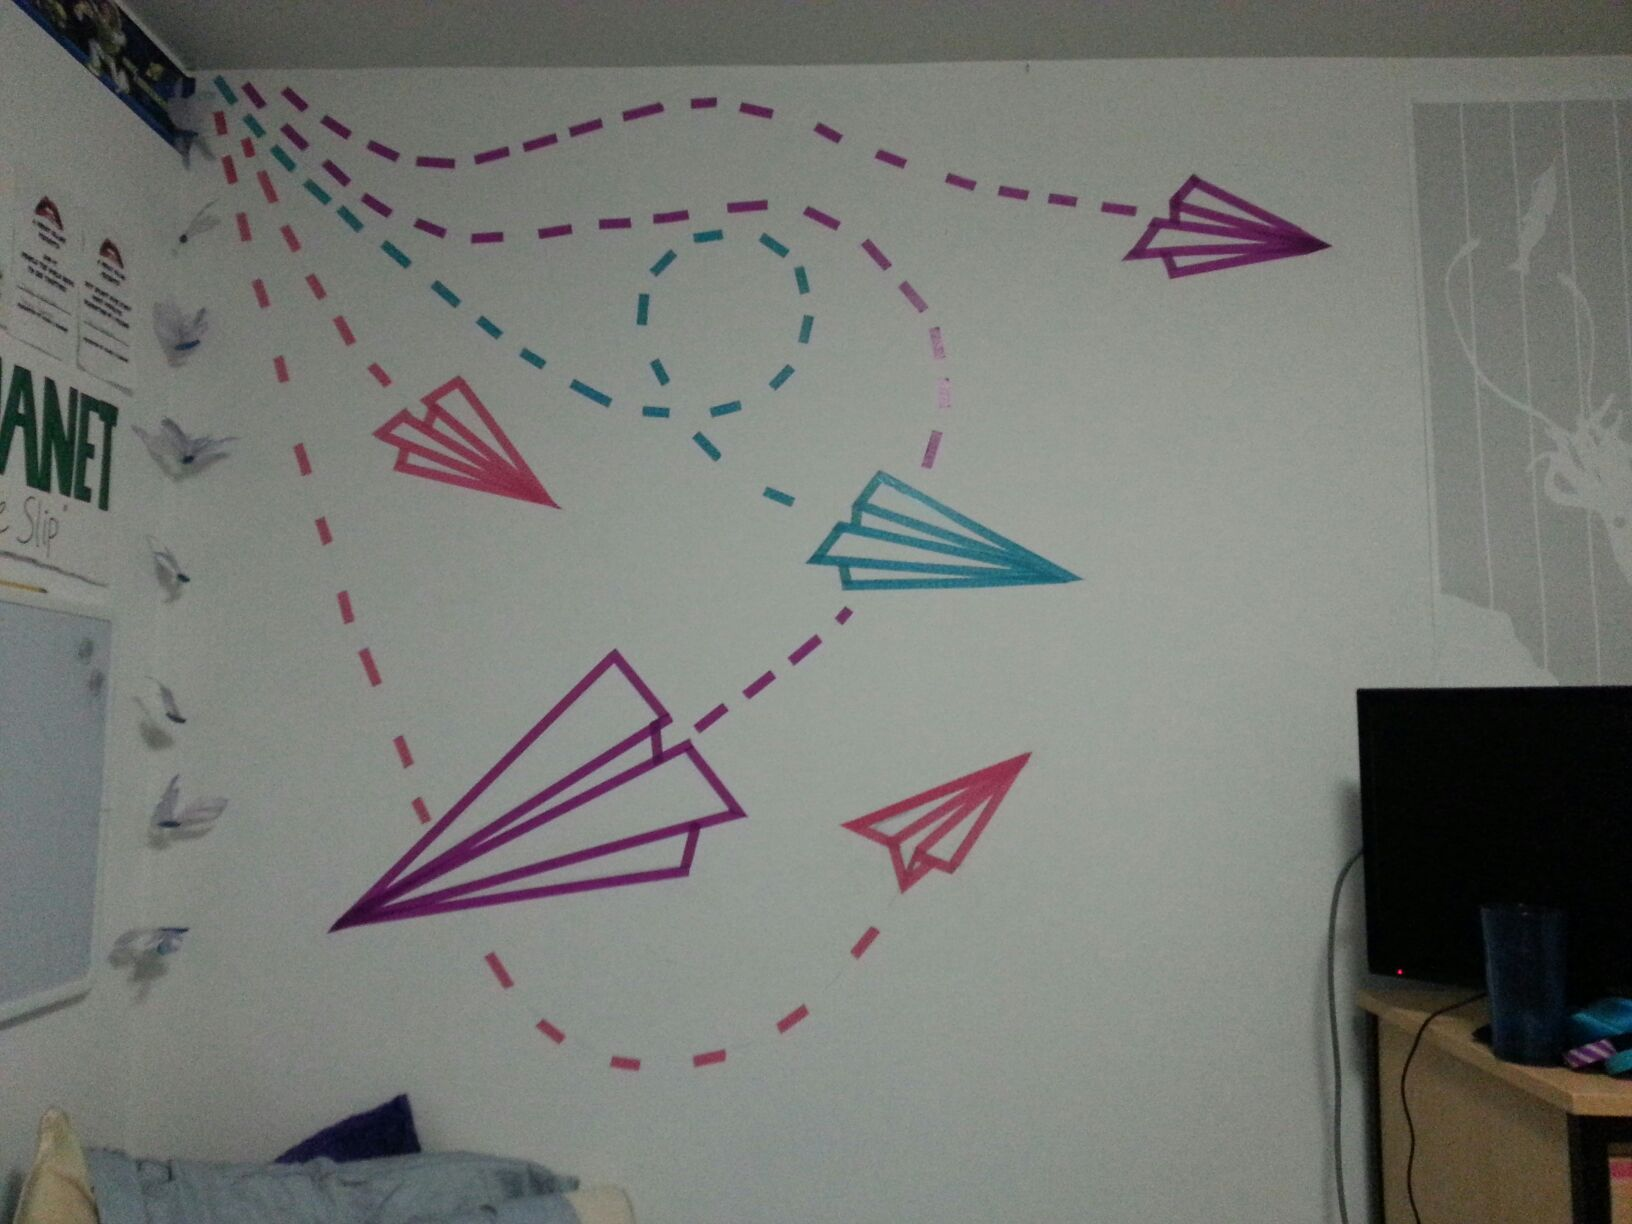 Wall Decoration Tape : Made this out of washi tape for my dorm room